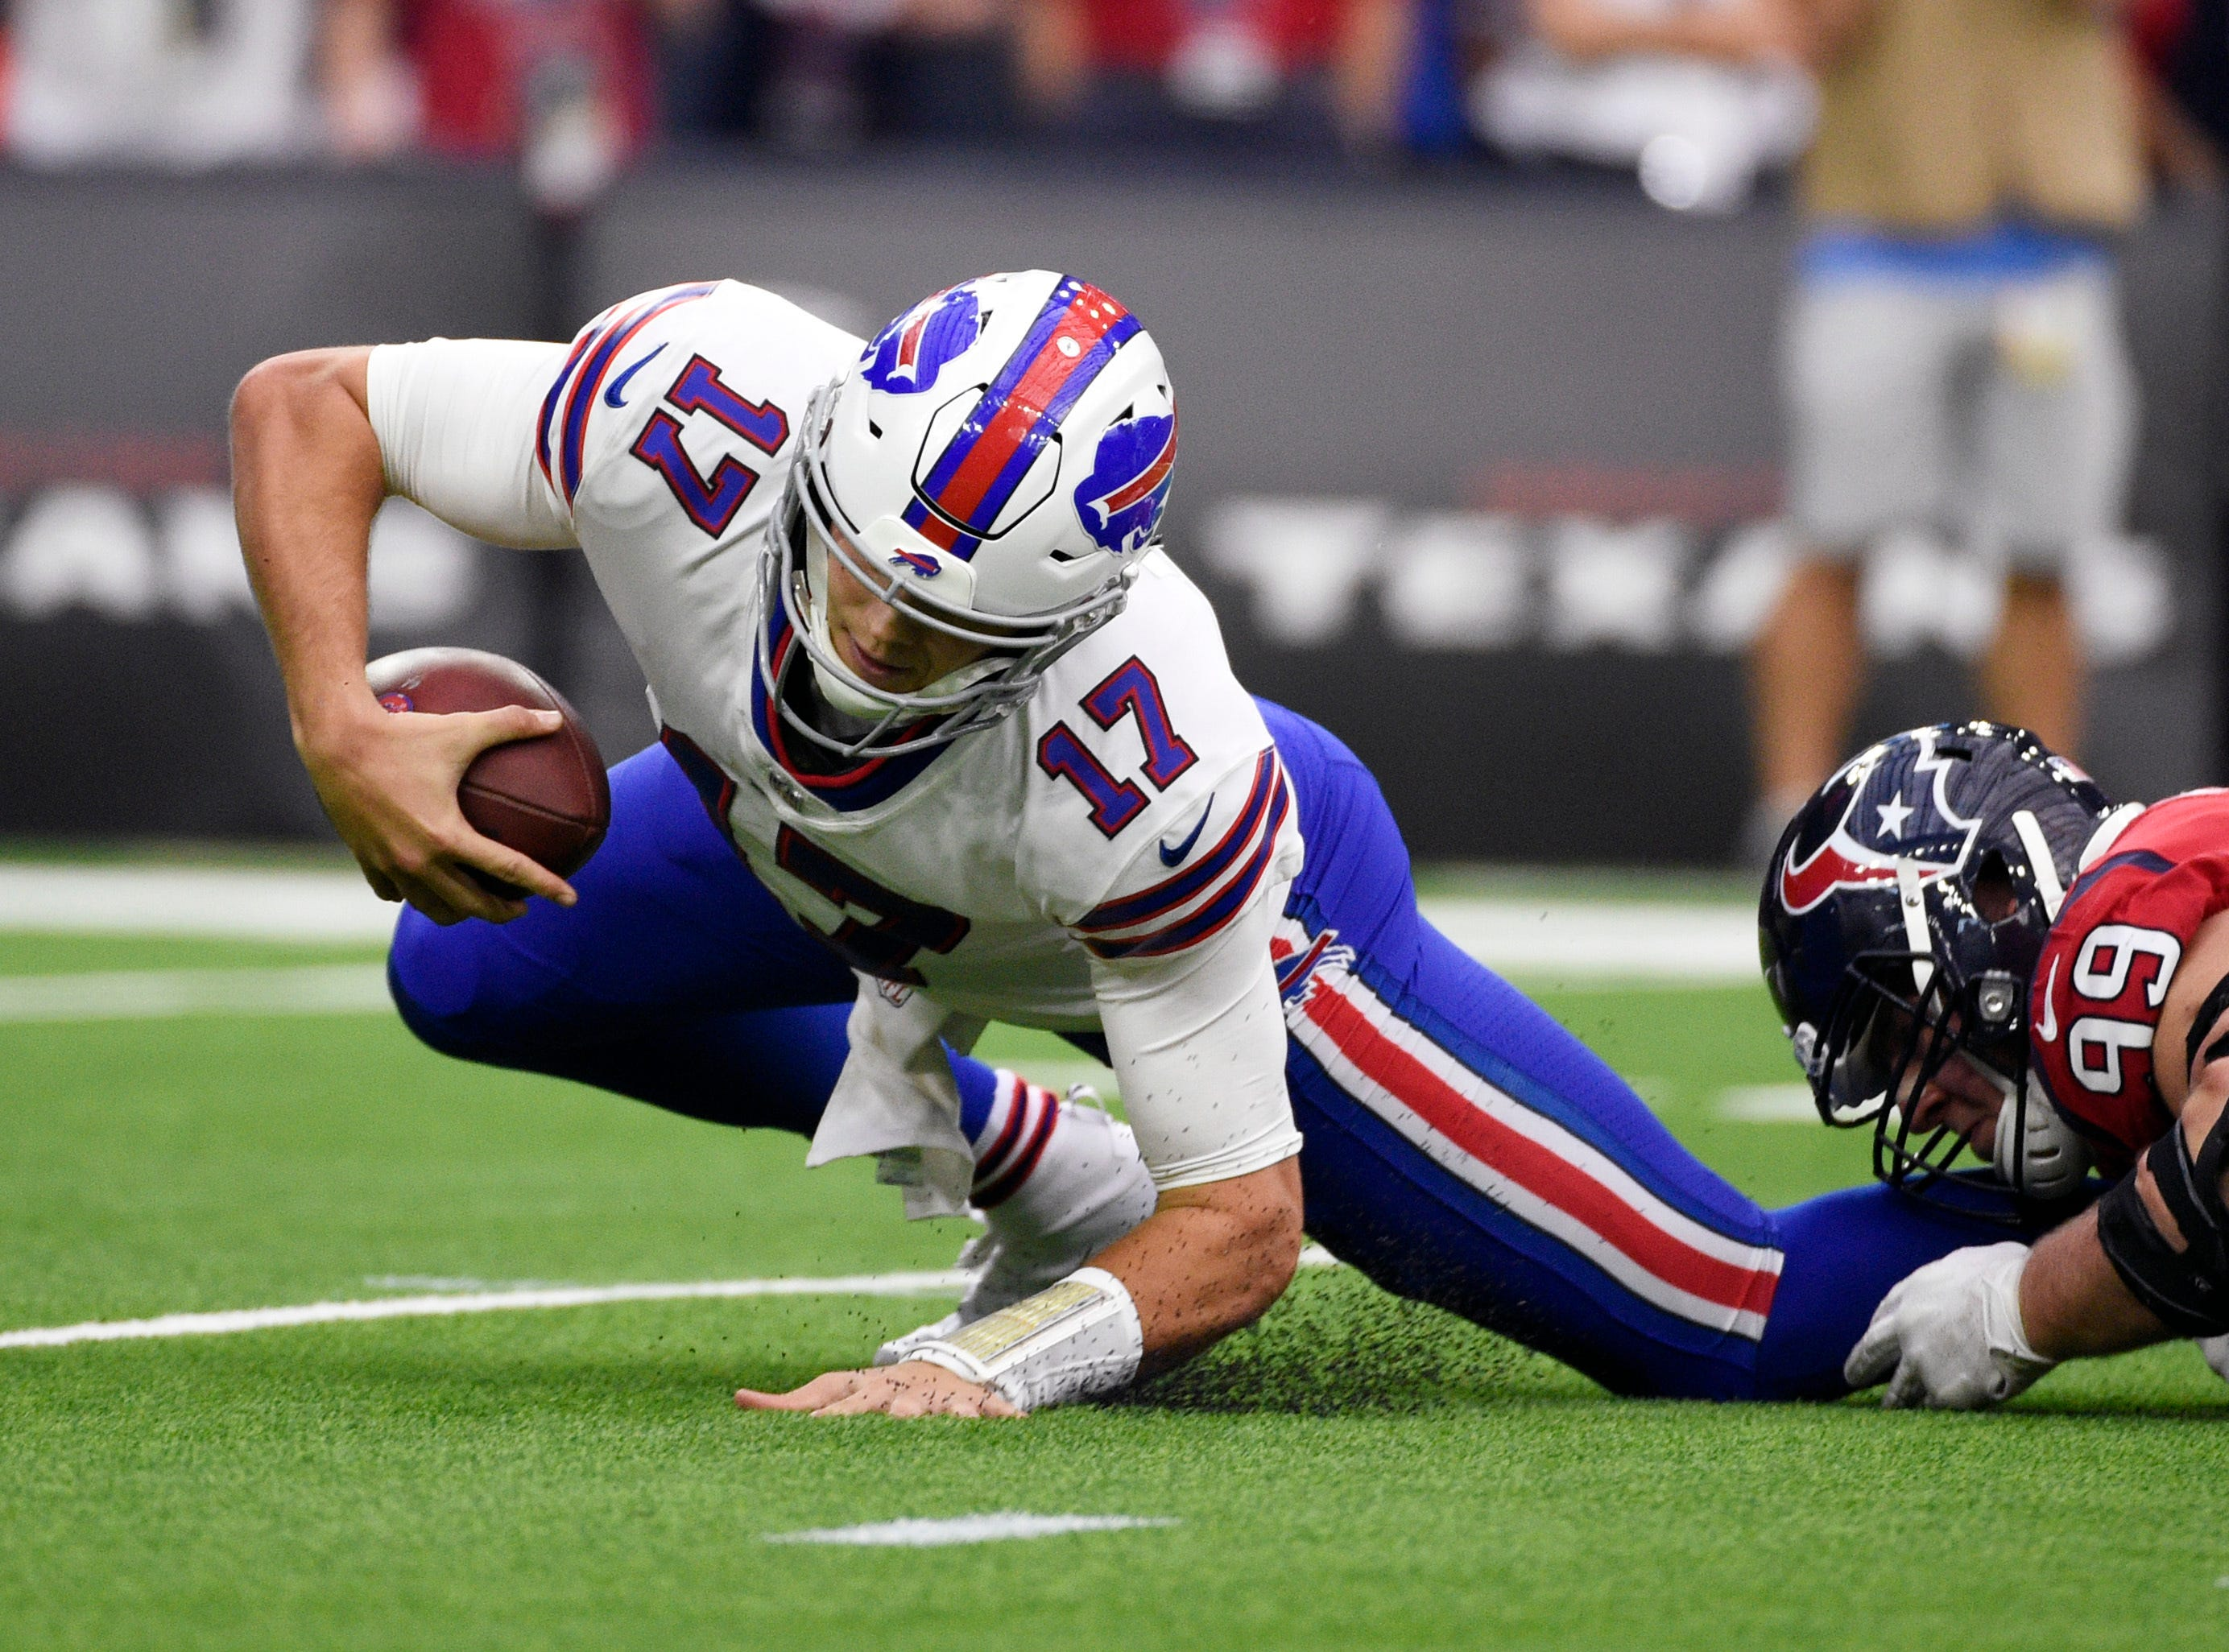 Buffalo Bills quarterback Josh Allen (17) is sacked by Houston Texans defensive end J.J. Watt (99) during the first quarter of an NFL football game, Sunday, Oct. 14, 2018, in Houston. (AP Photo/Eric Christian Smith)